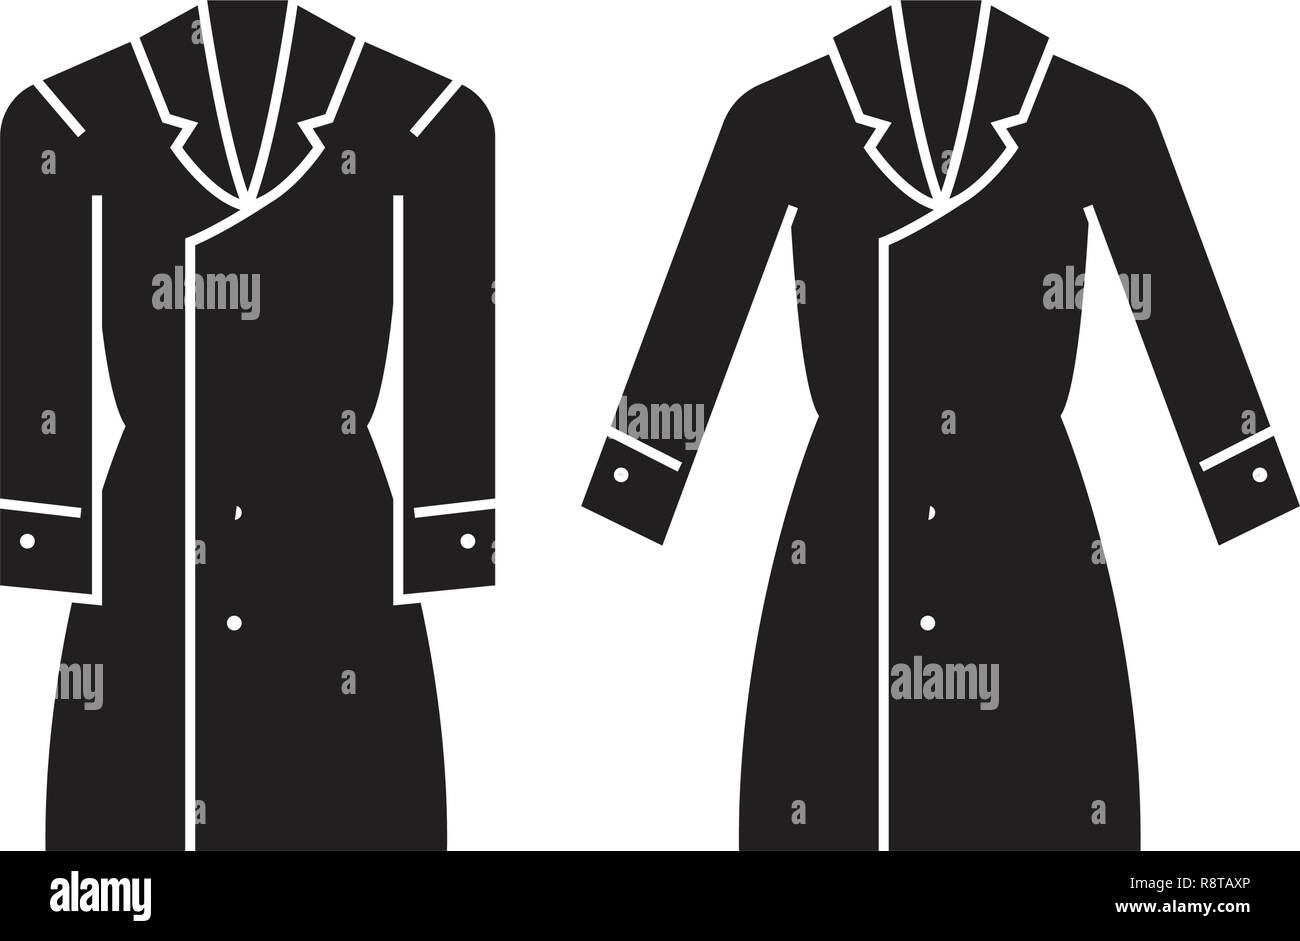 c95d6702341 Trench coat black vector concept icon. Trench coat flat illustration, sign